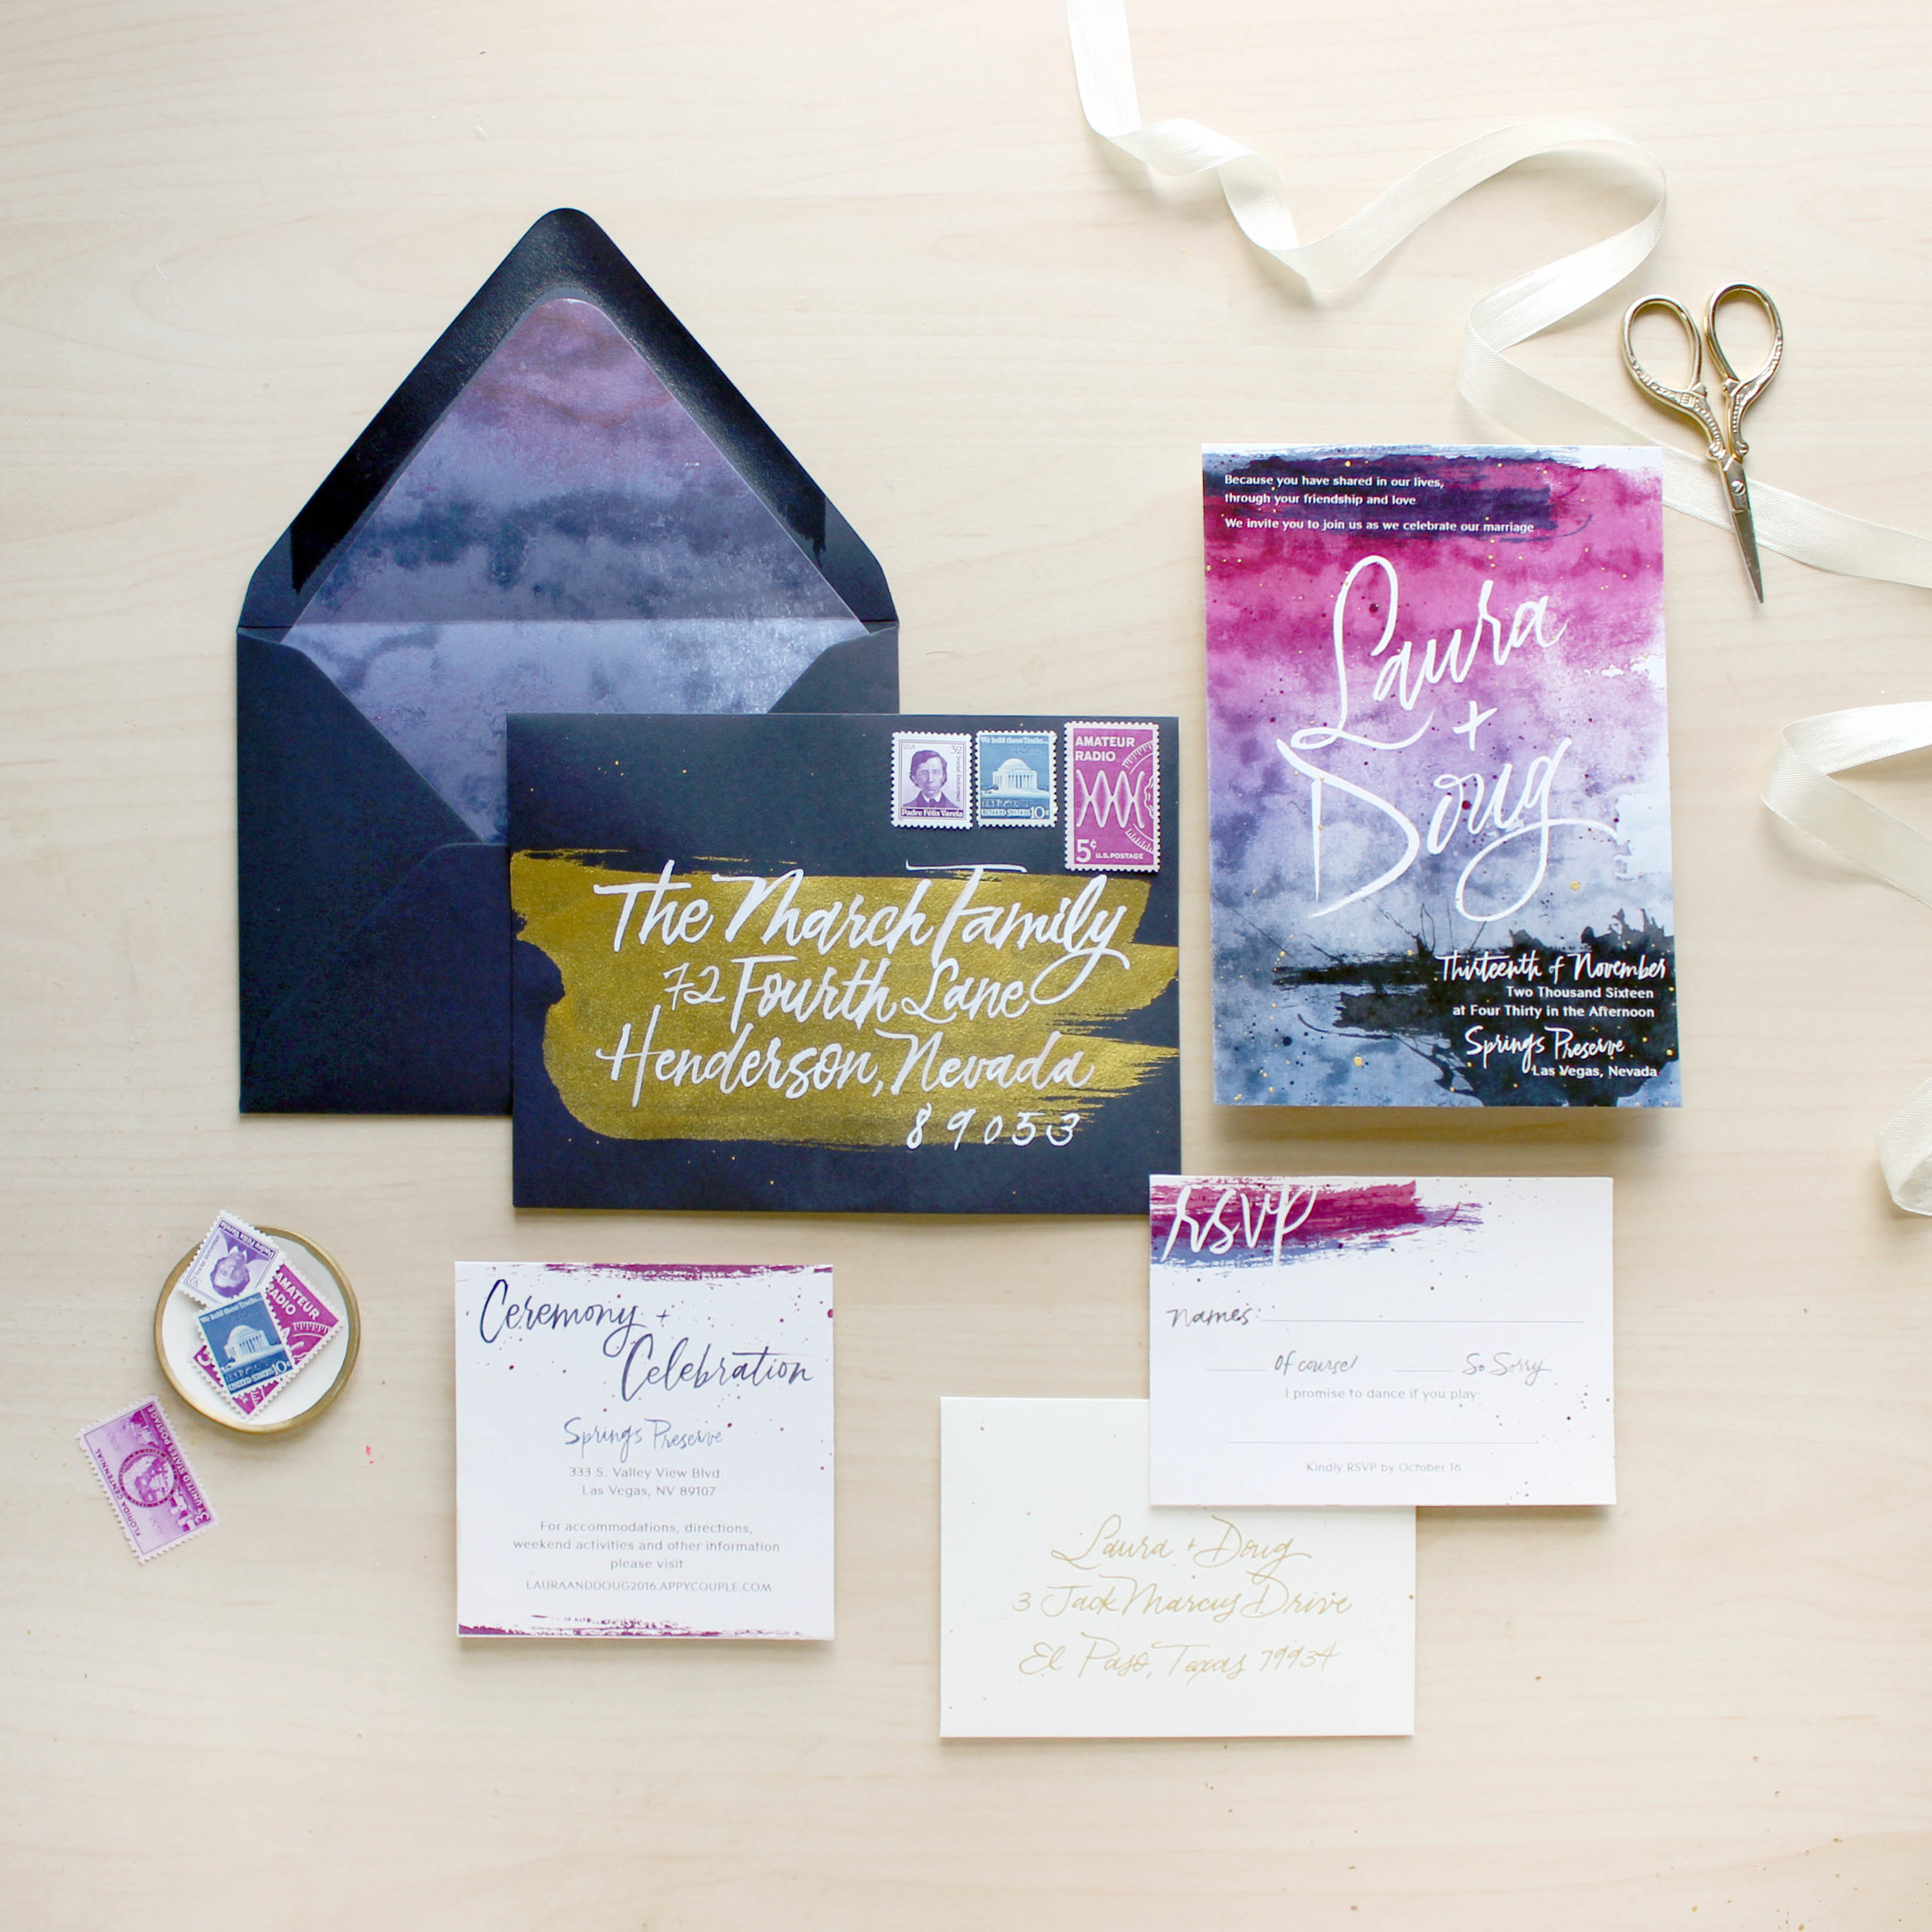 4 Tips on Choosing your Wedding Stationery: Establish Your Style. Read more at ashbush.com